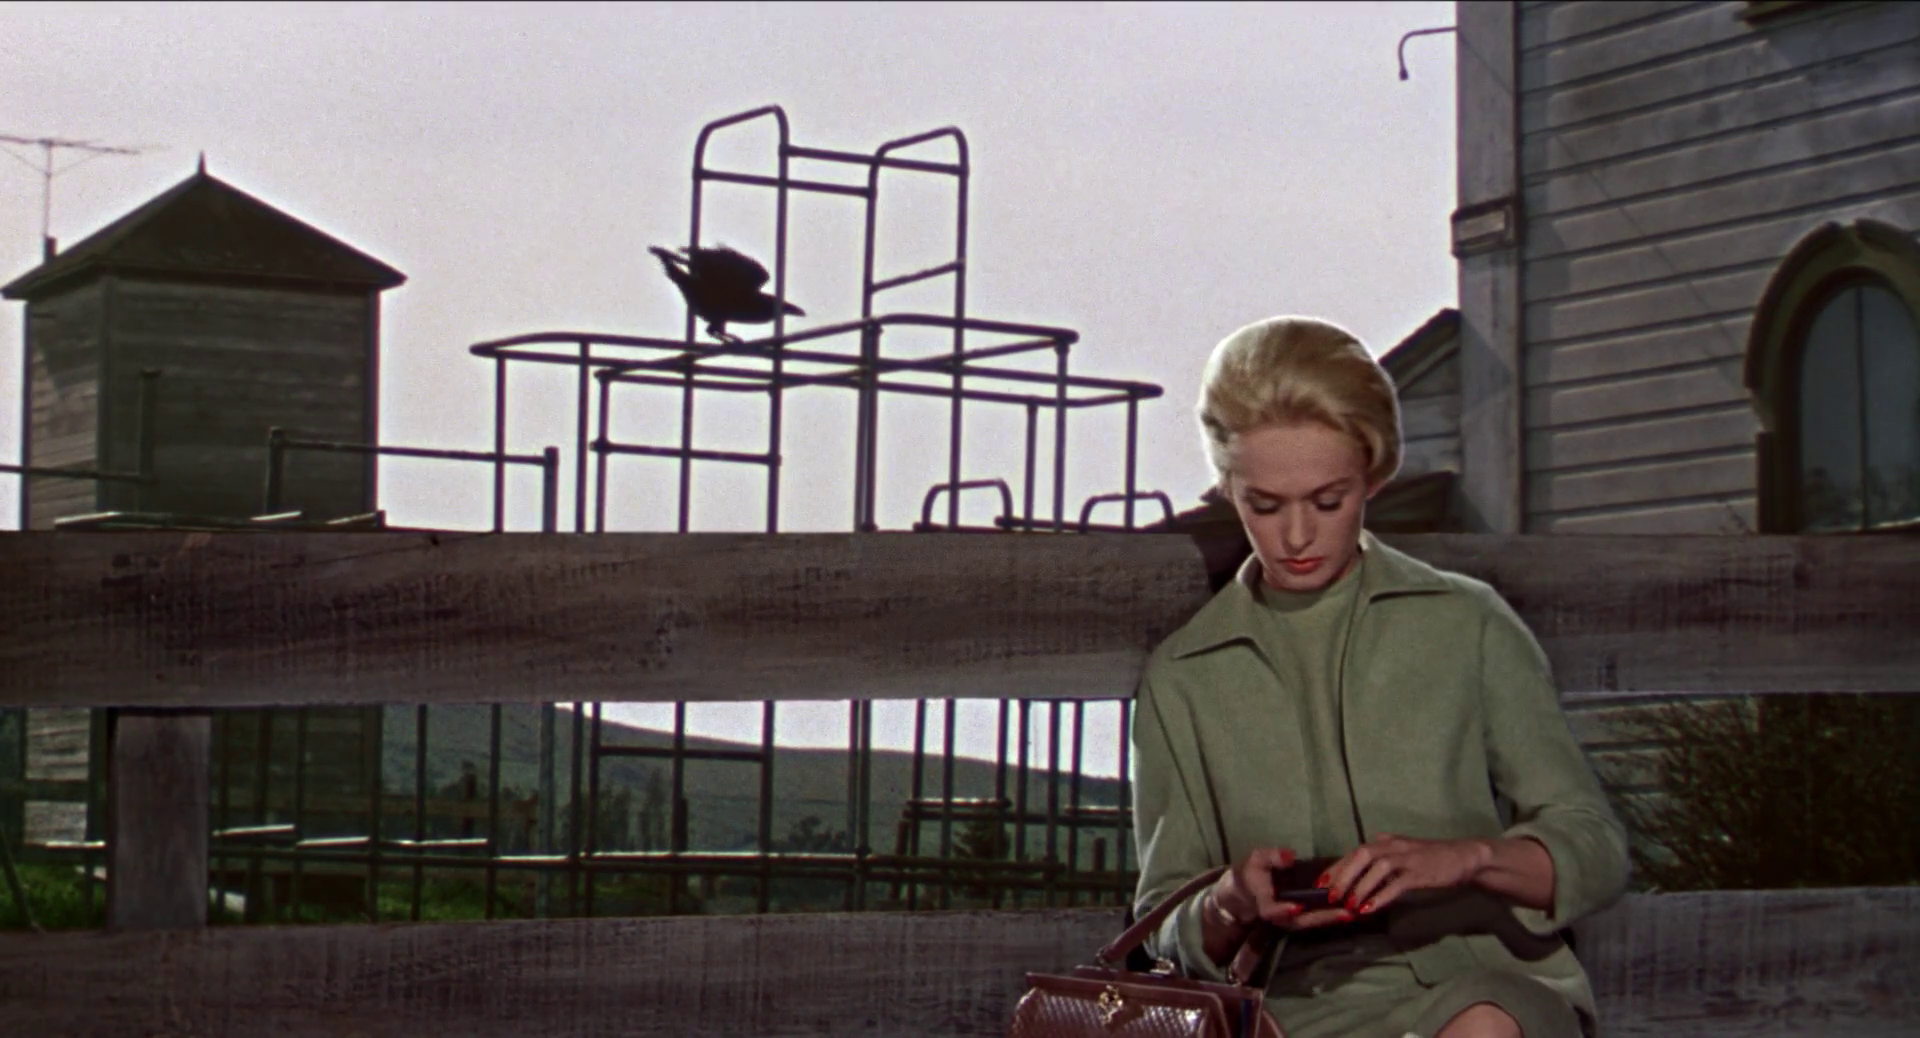 Tippi Hedren waits at the school, oblivious to the birds slowly amassing behind her in The Birds